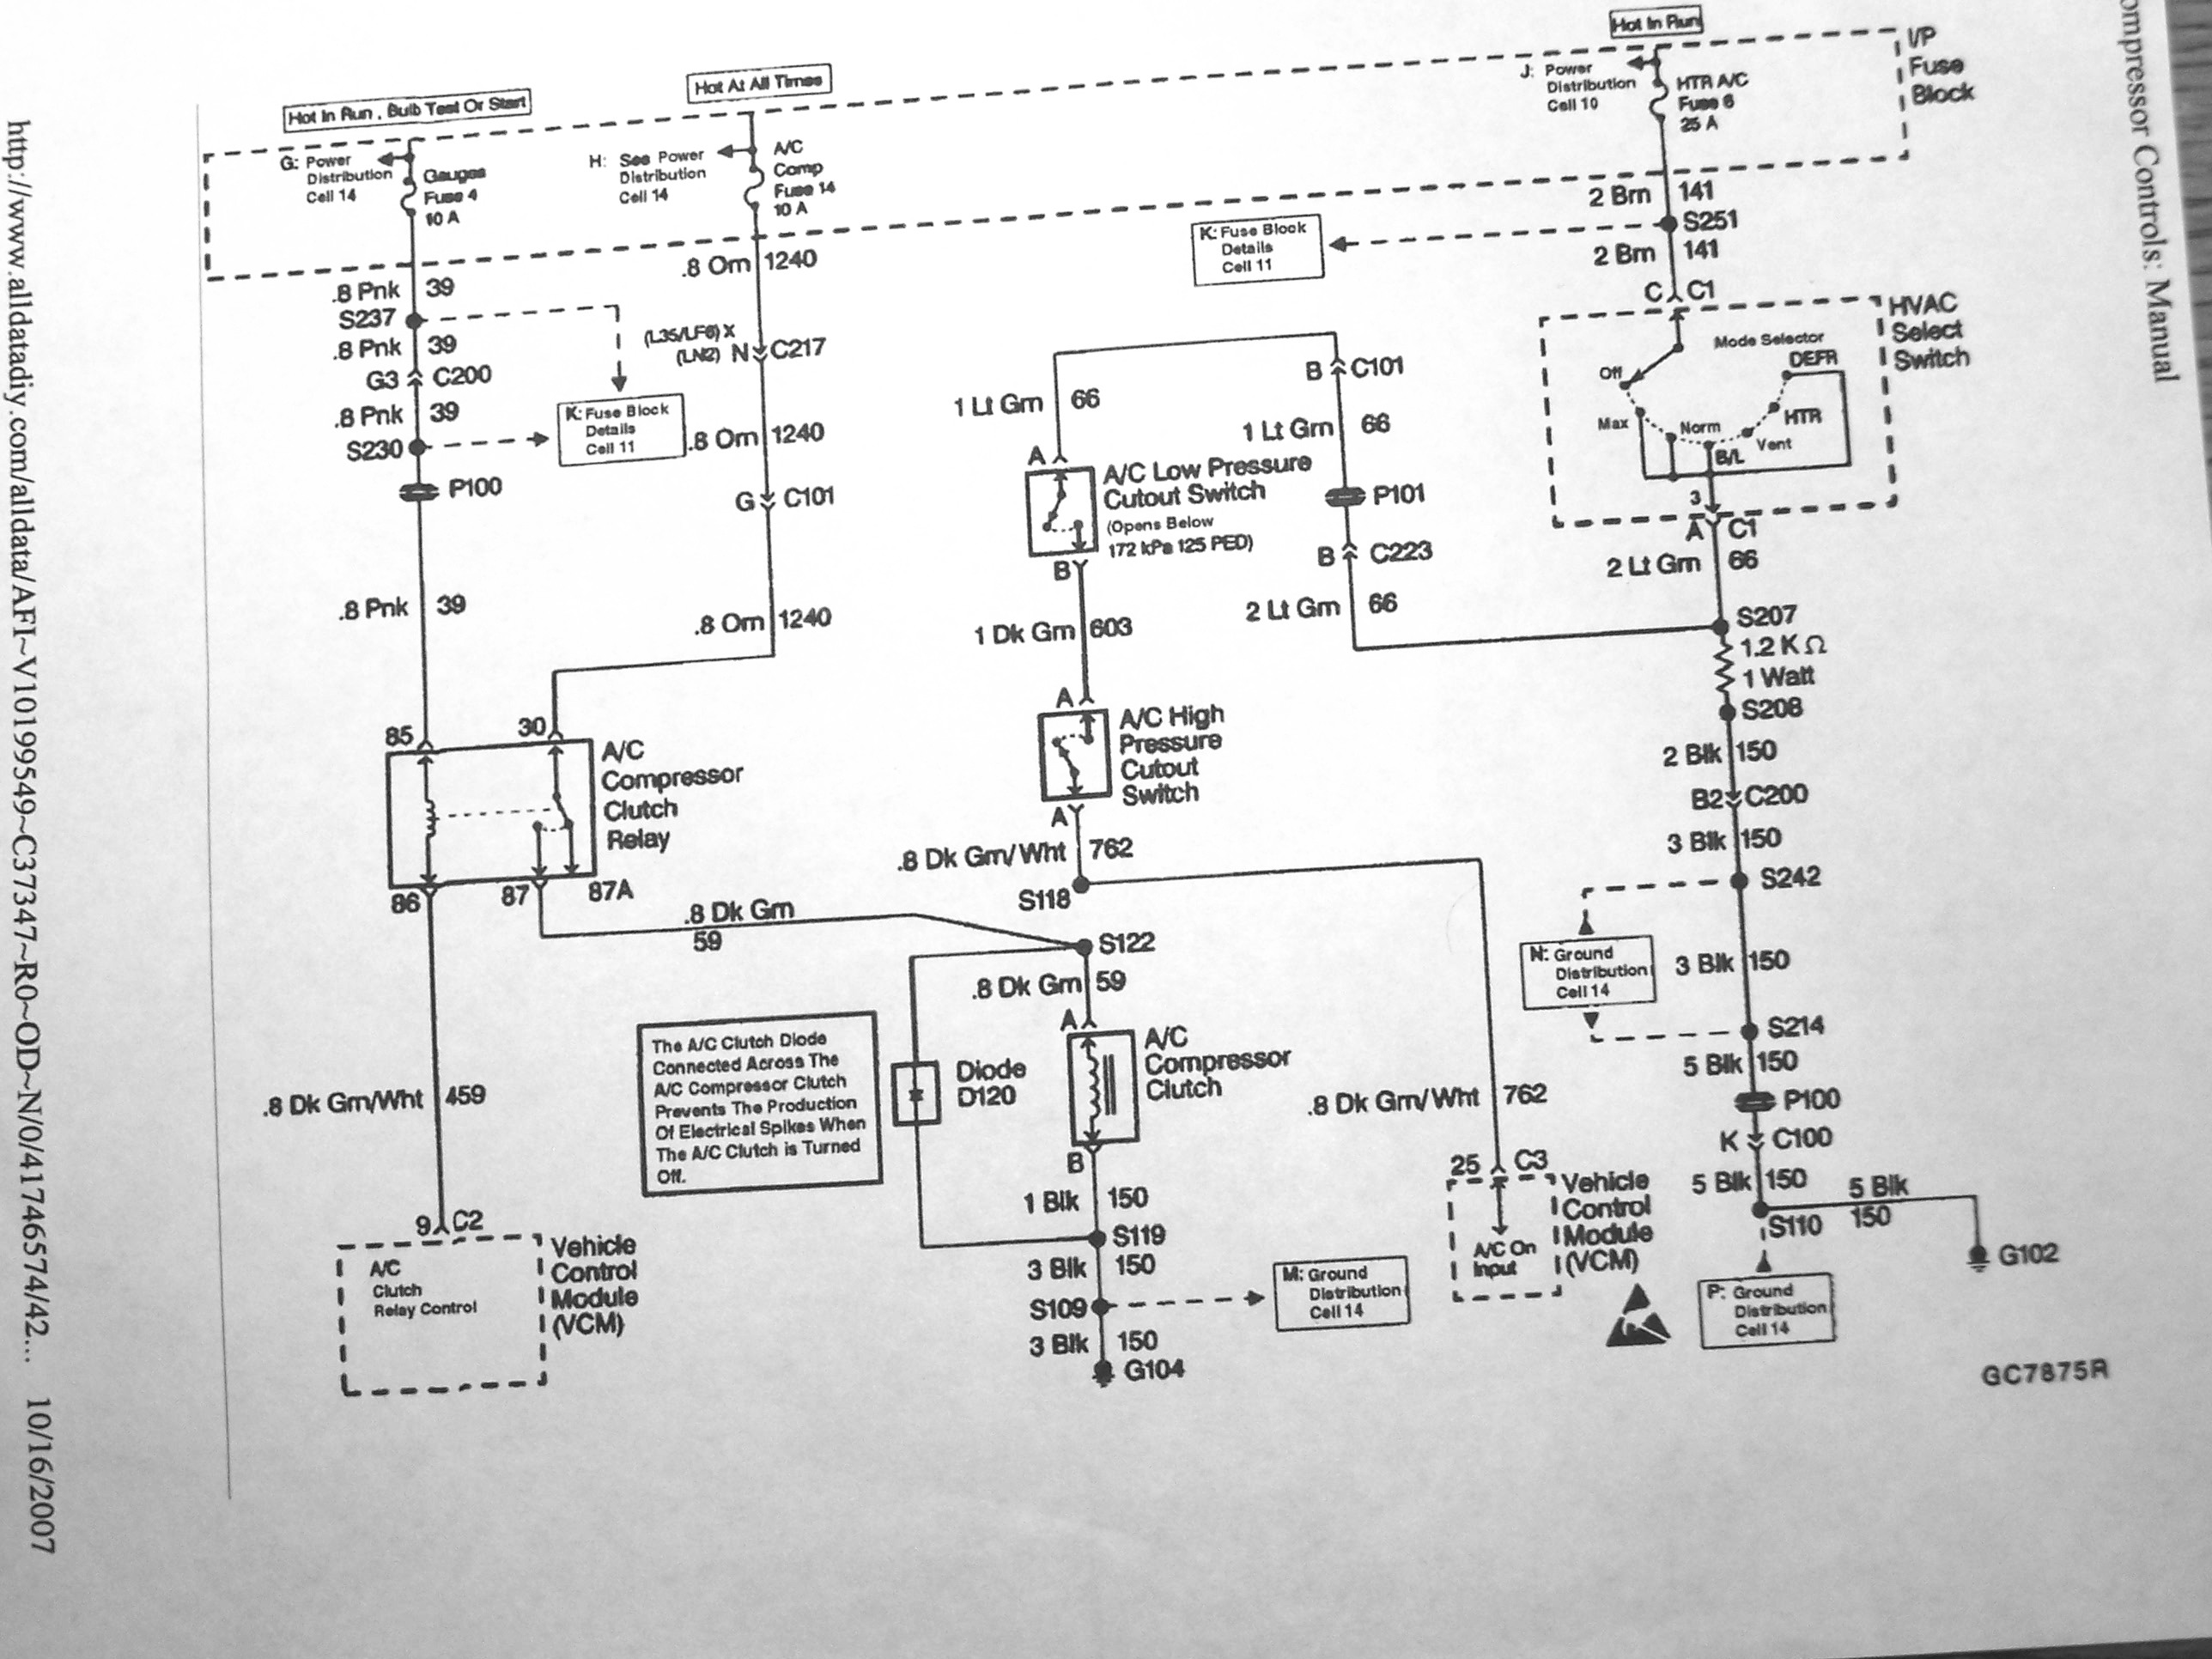 chevy g a c wiring diagram tech support forum click image for larger version chevy25 jpg views 1283 size 724 3